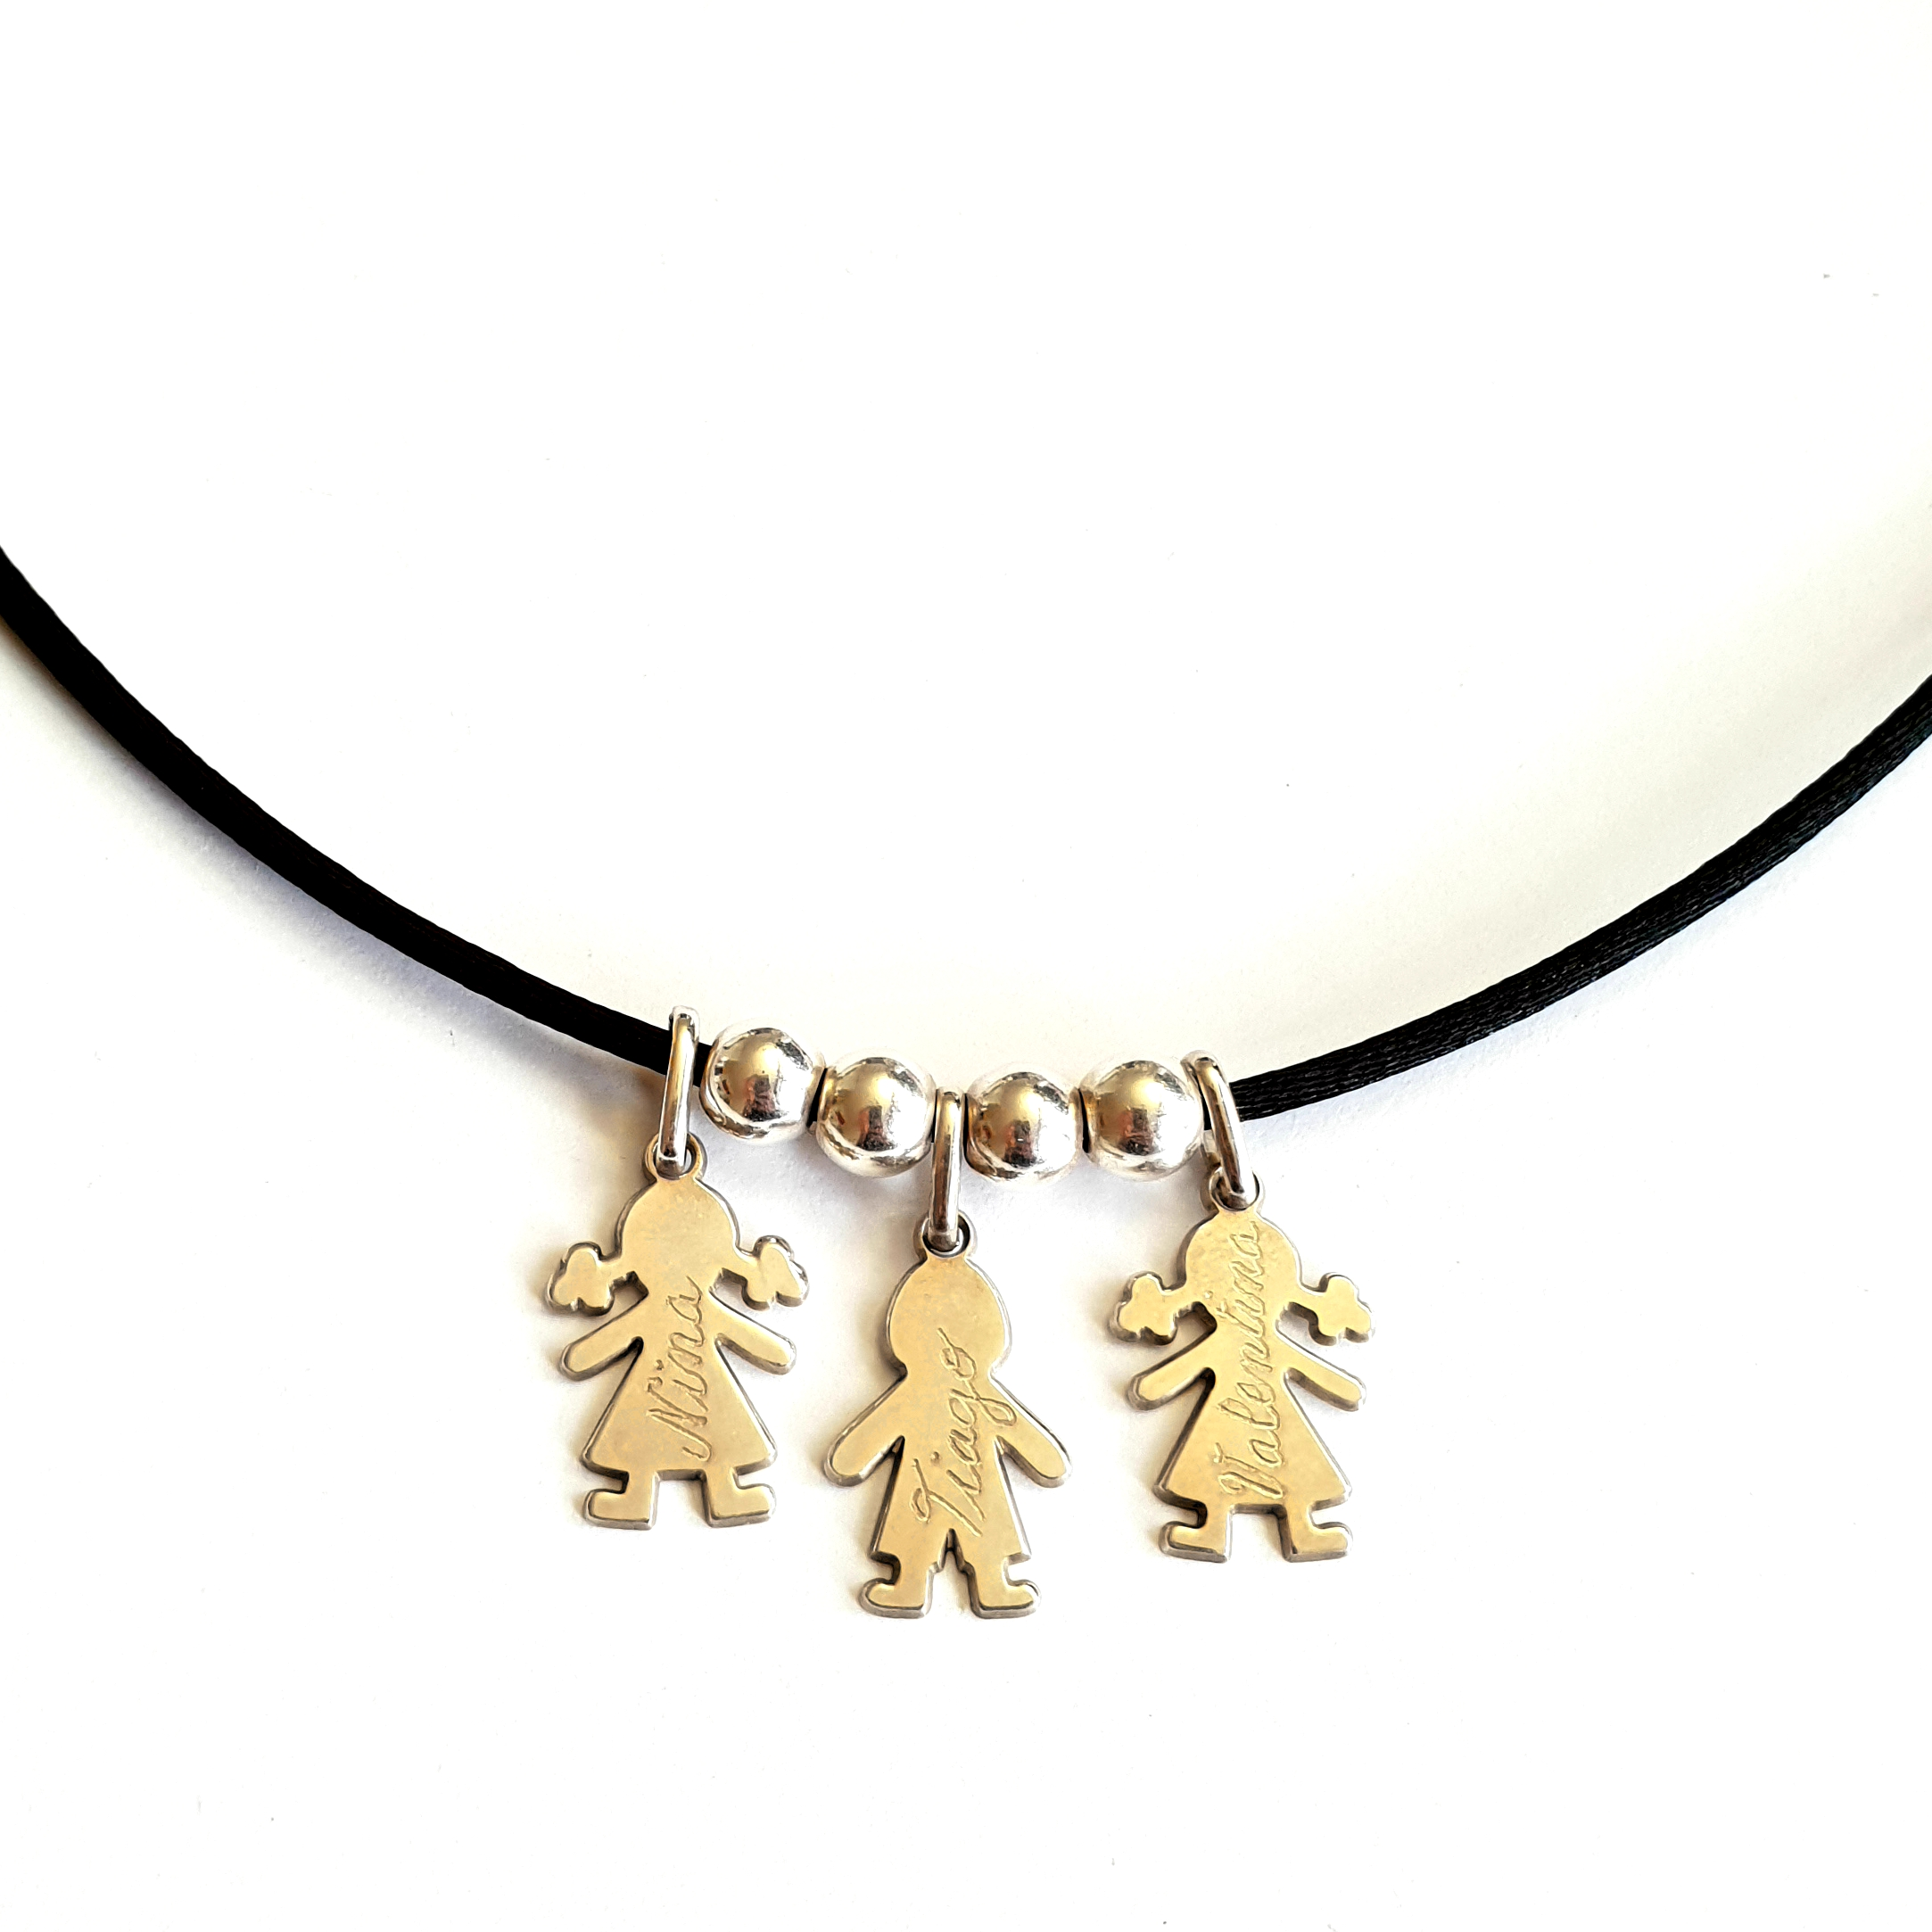 ancien-collier-3-personnages.jpg